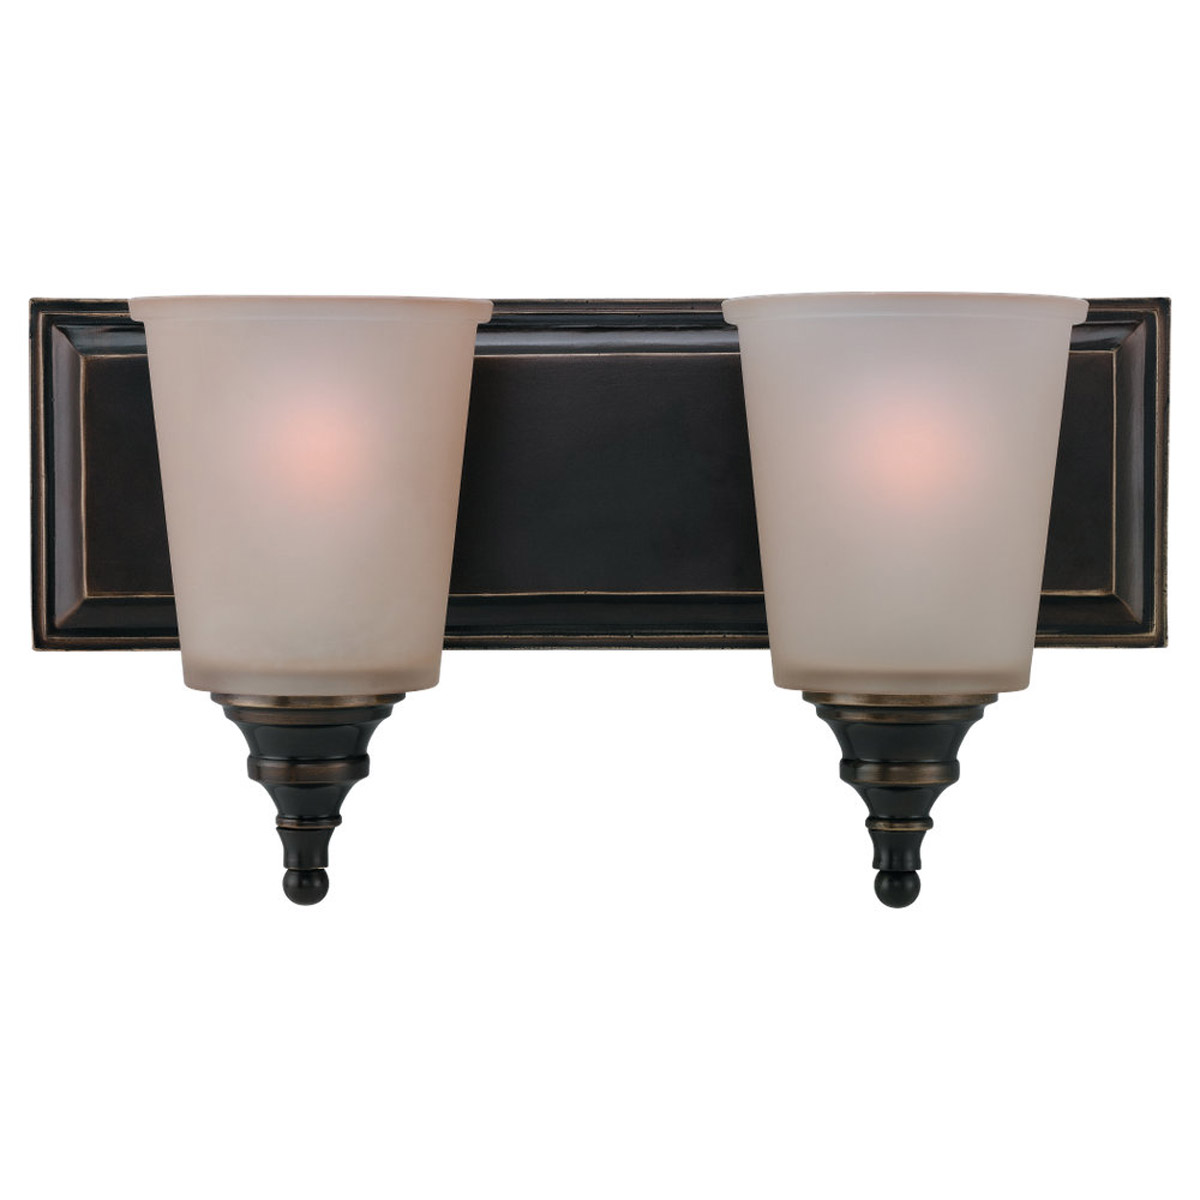 Sea Gull Lighting Warwick 2 Light Bath Vanity in Vintage Bronze 44330-825 photo